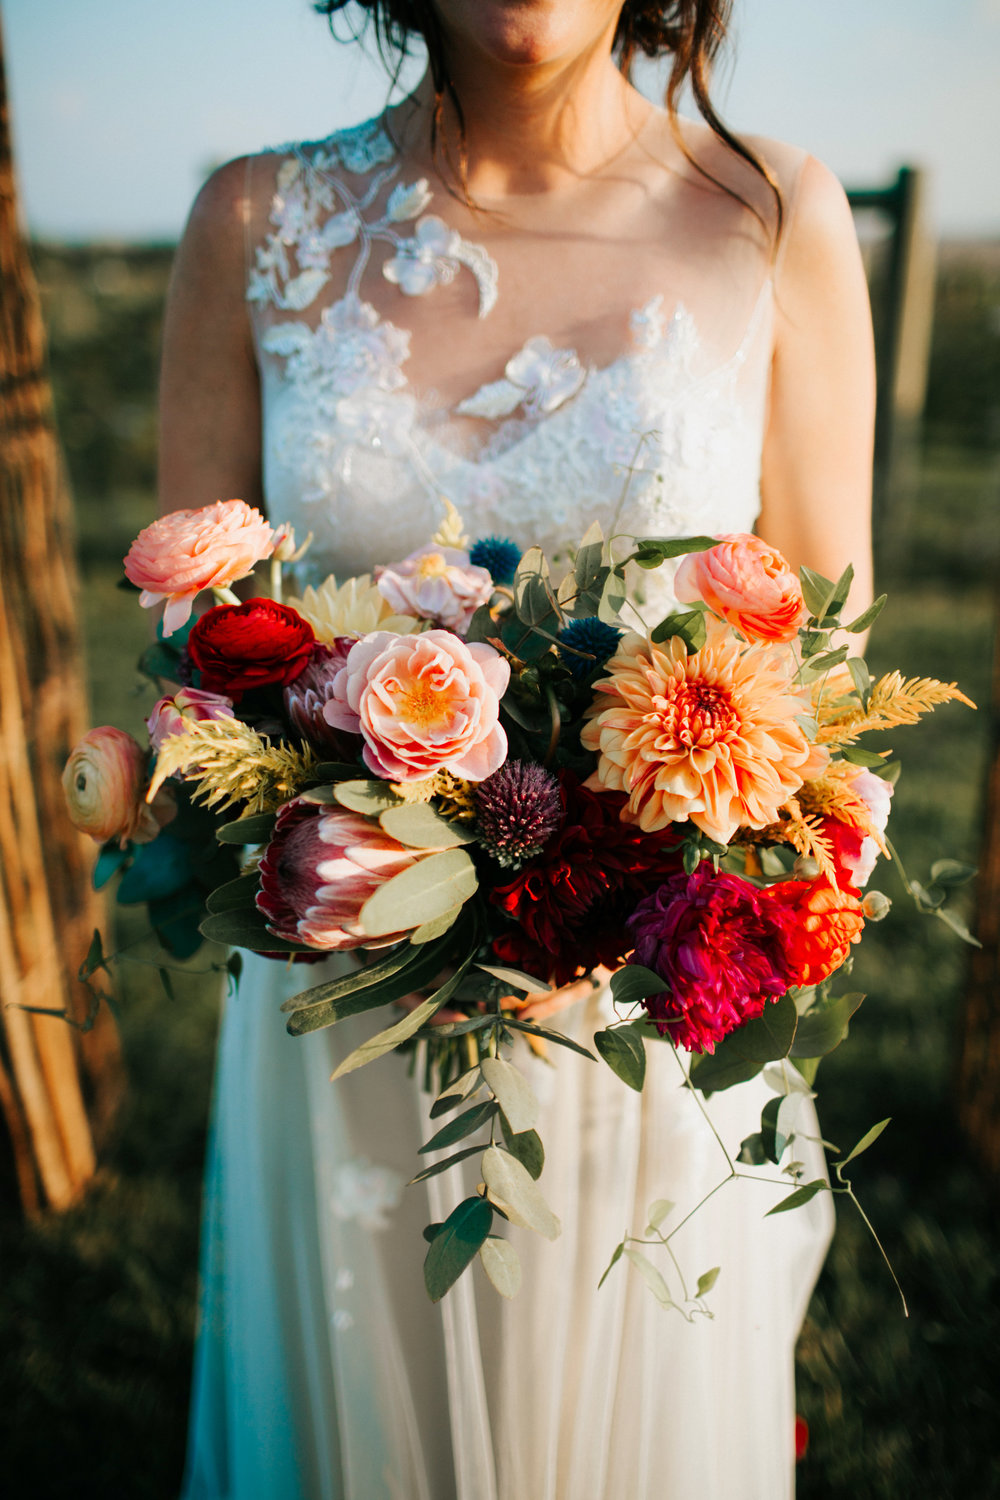 Alex & Kate - Deidre Lynn Photography, Fabulous Affairs, Floral Designs & Spruce Rentals